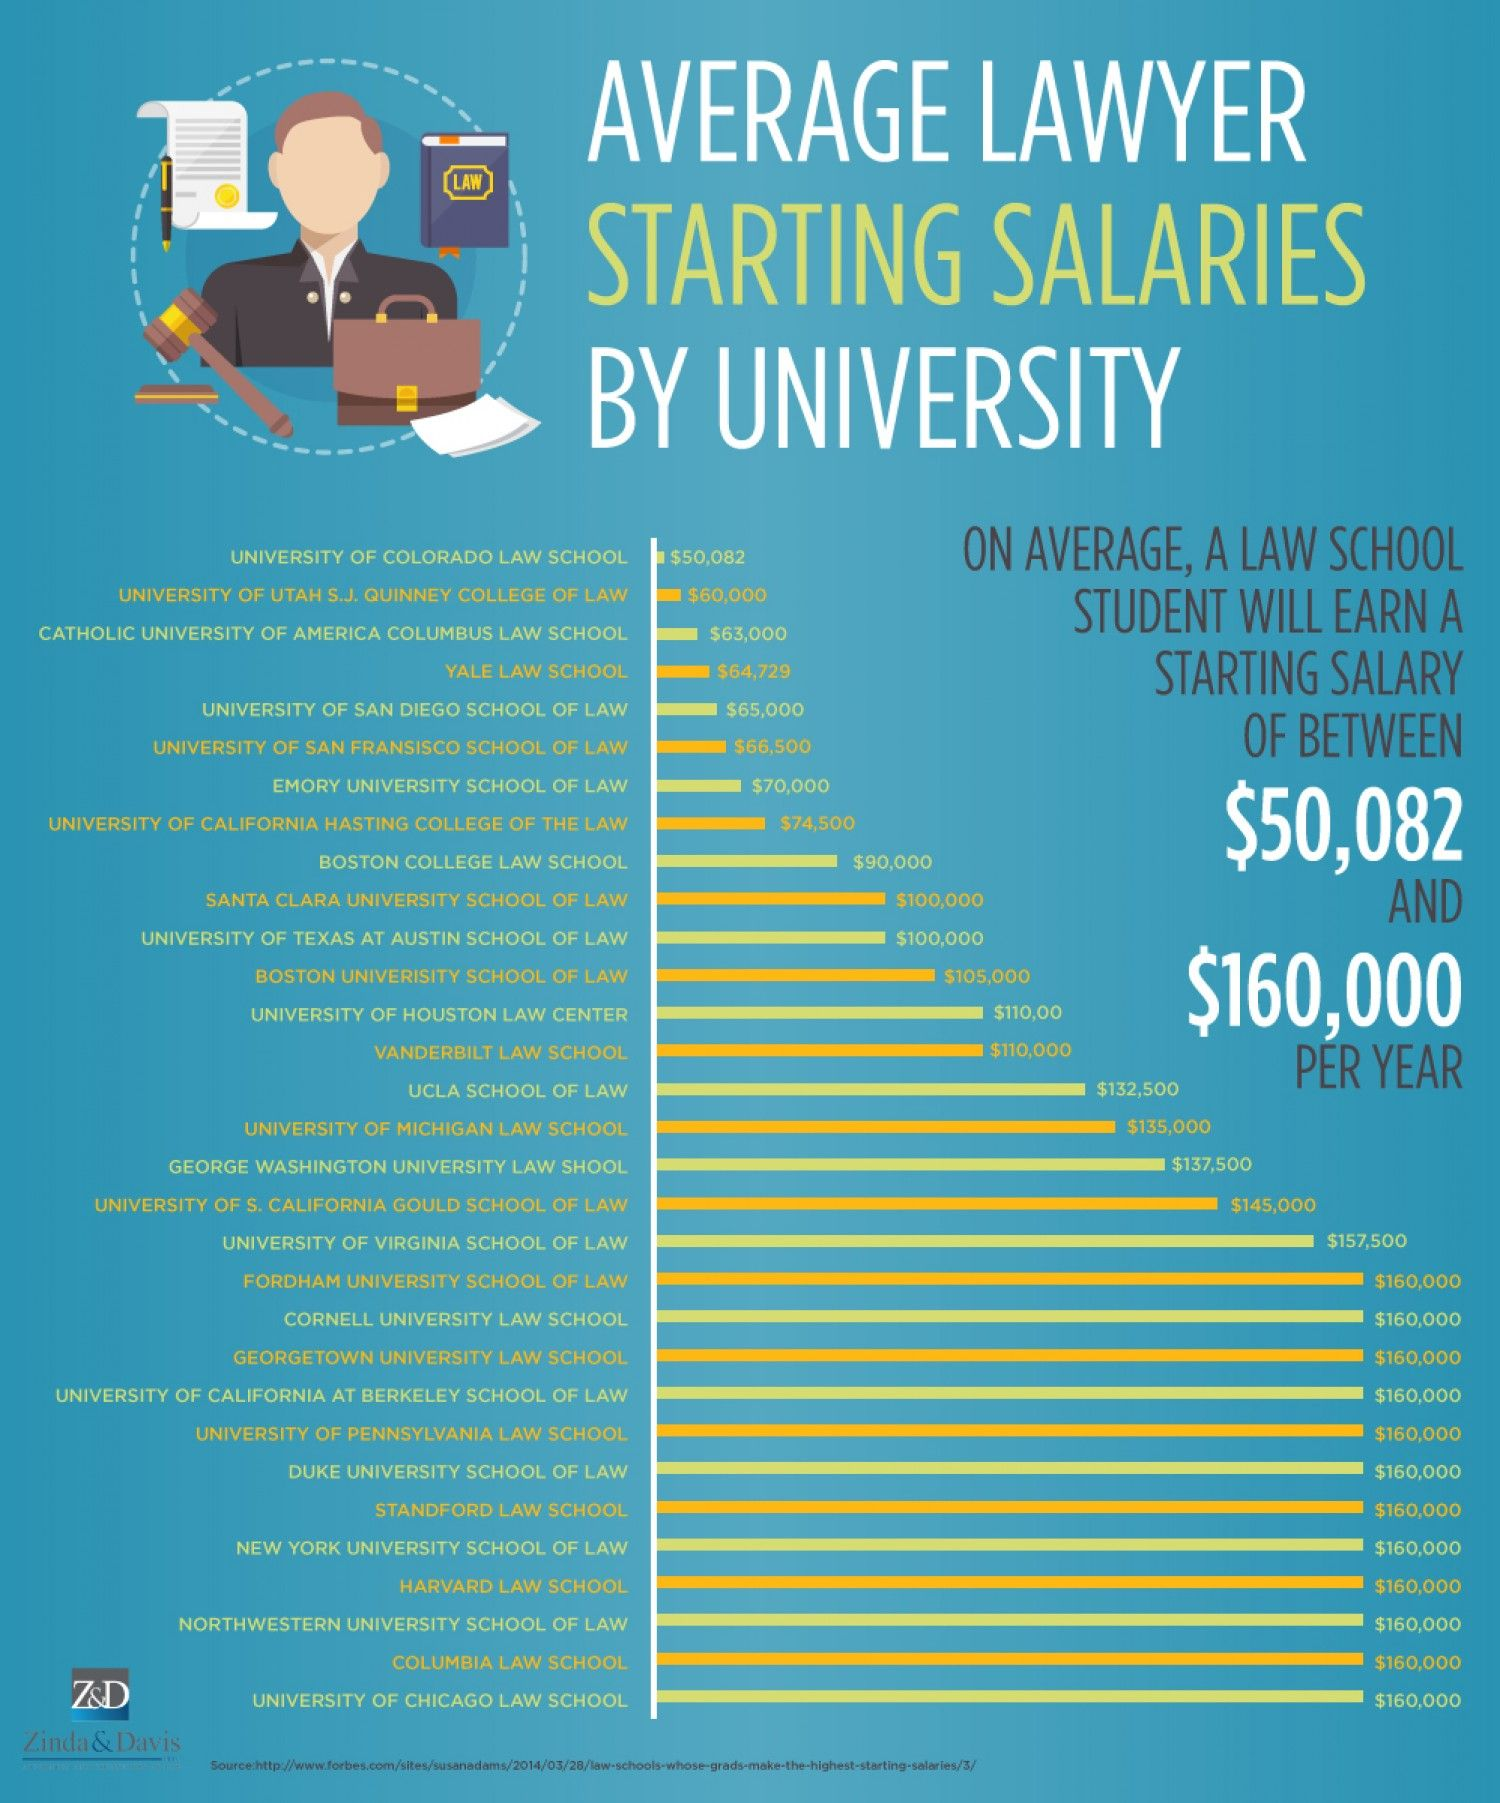 Average Lawyer Starting Salaries By University Infographic High